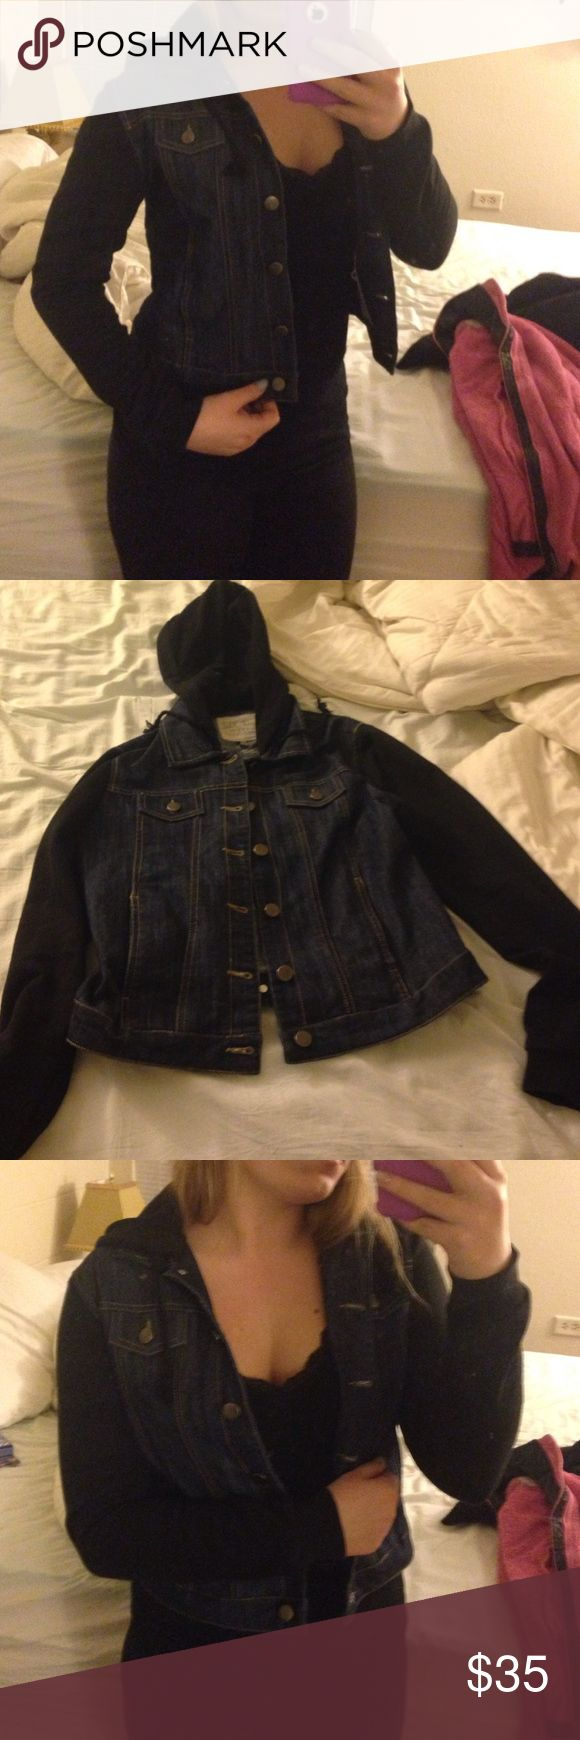 Nwot Super cute hooded jean jacket Very stylish for fall PacSun Jackets & Coats Jean Jackets